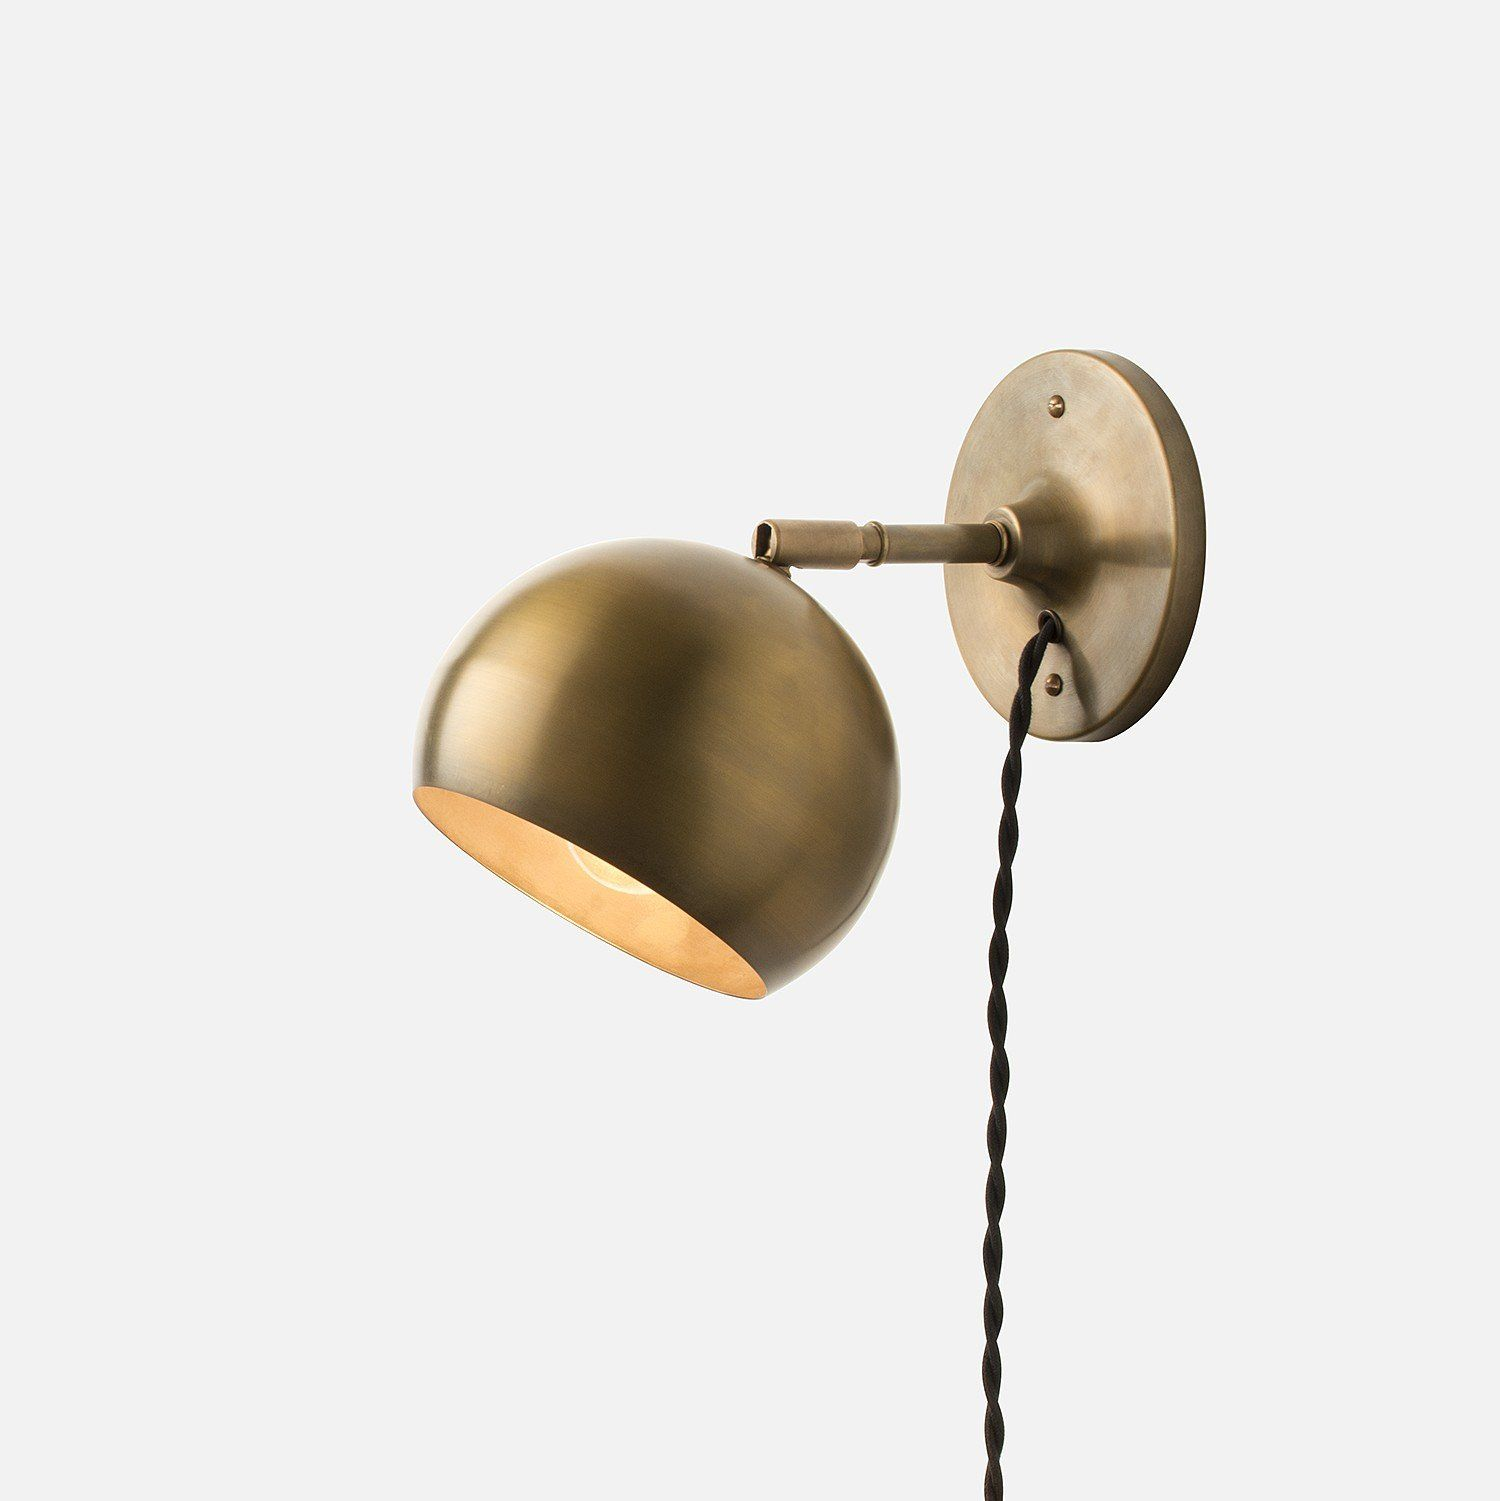 Isaac Plug In Sconce Brass Short Arm House Plug In